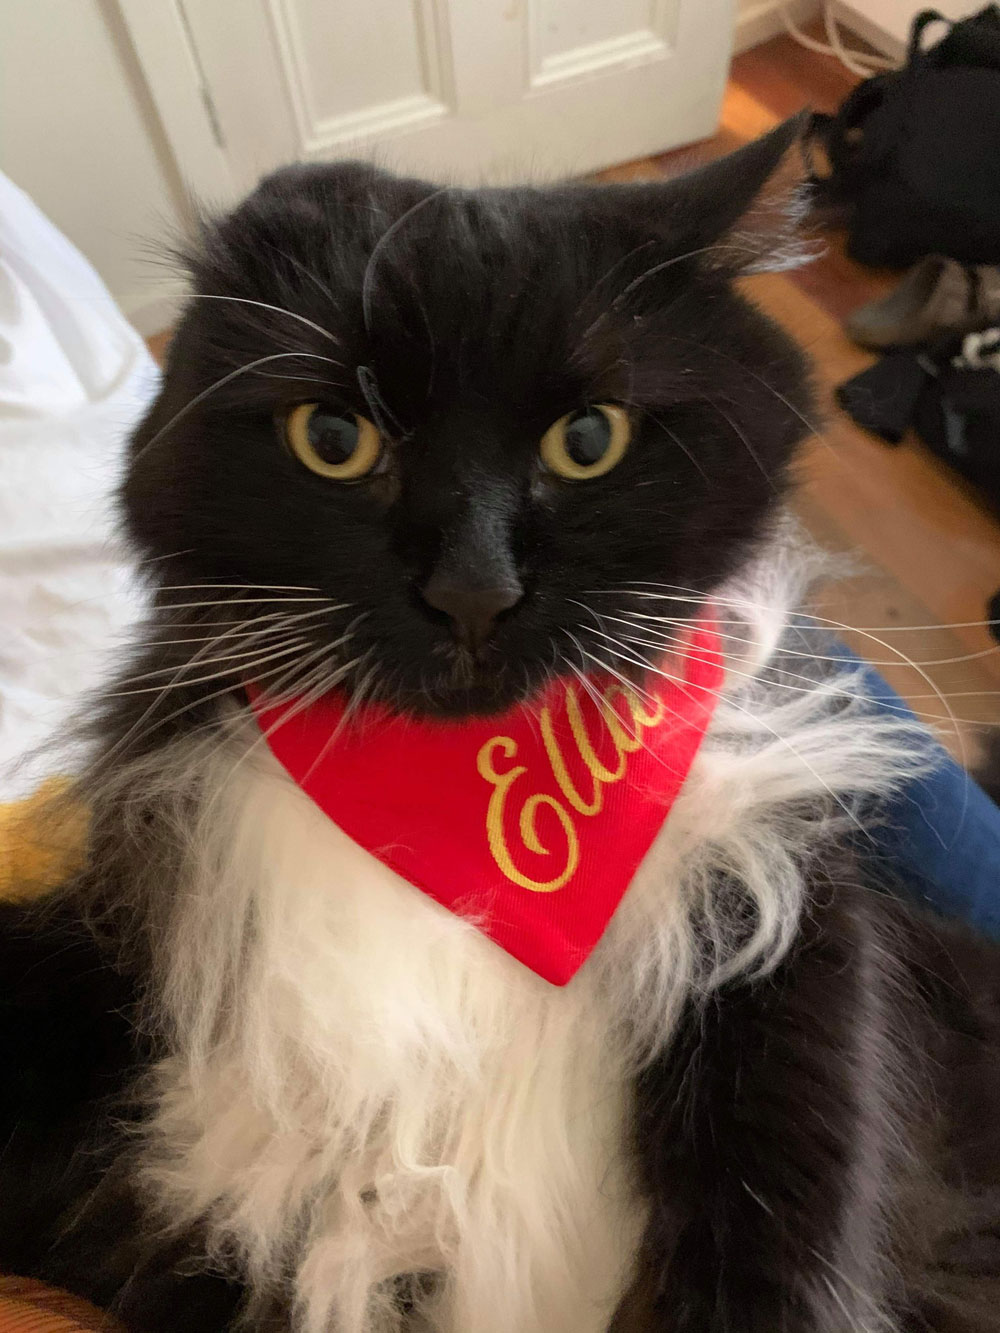 A photo of a cat, looking mad, wearing a neckerchief with one ear flopped down.